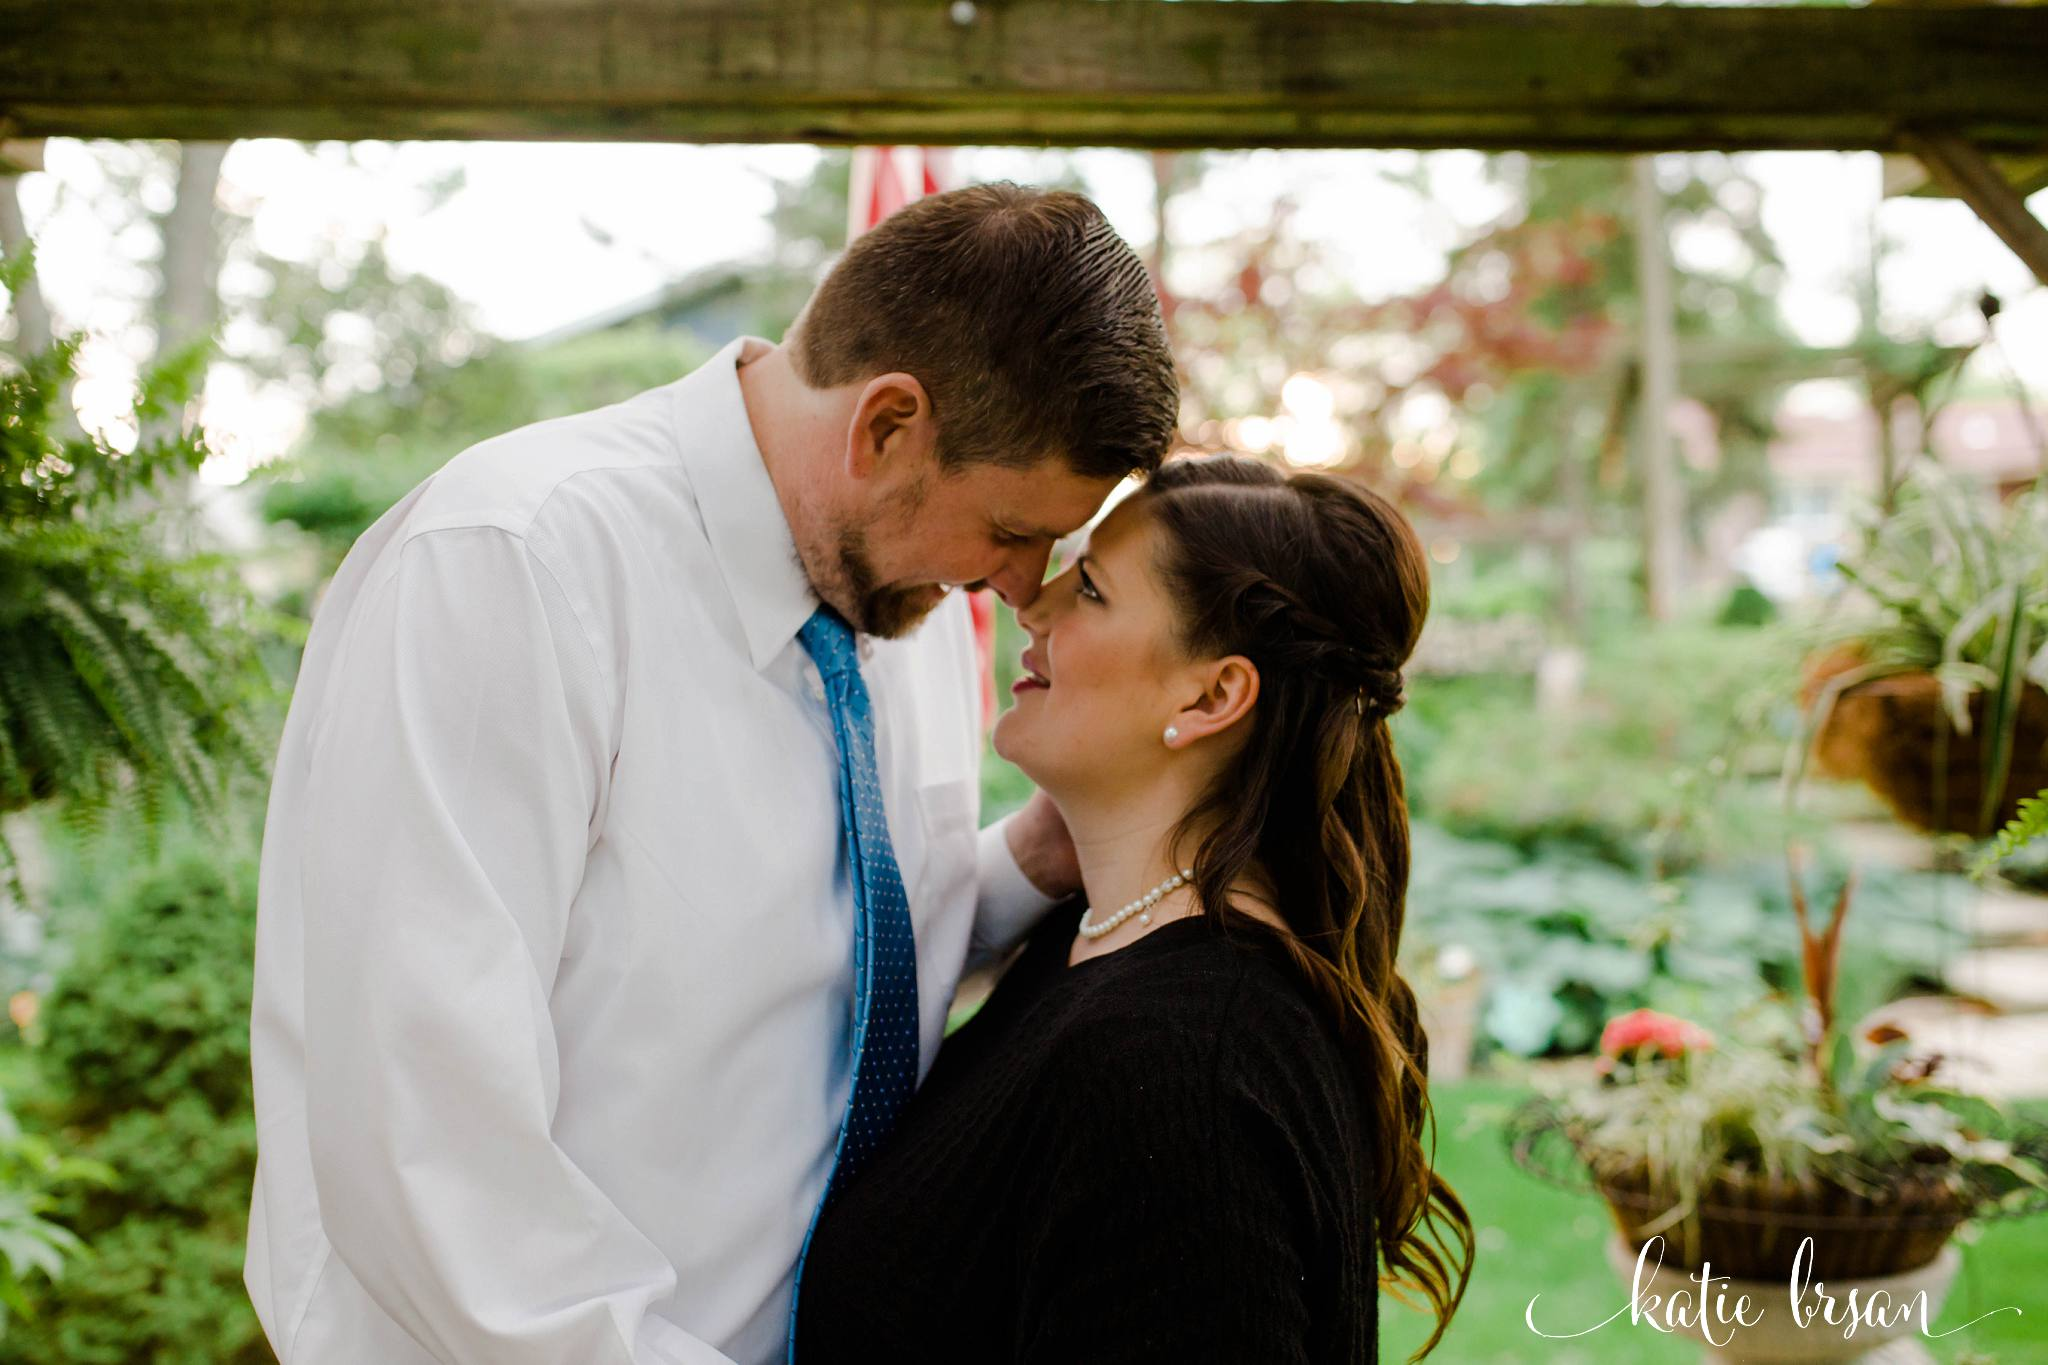 KatieBrsan-HomerGlen-NewLenox-EngagementSession-HadleyValley-TeacherEngagementSession-ChicagoWeddingPhotographer_0587.jpg